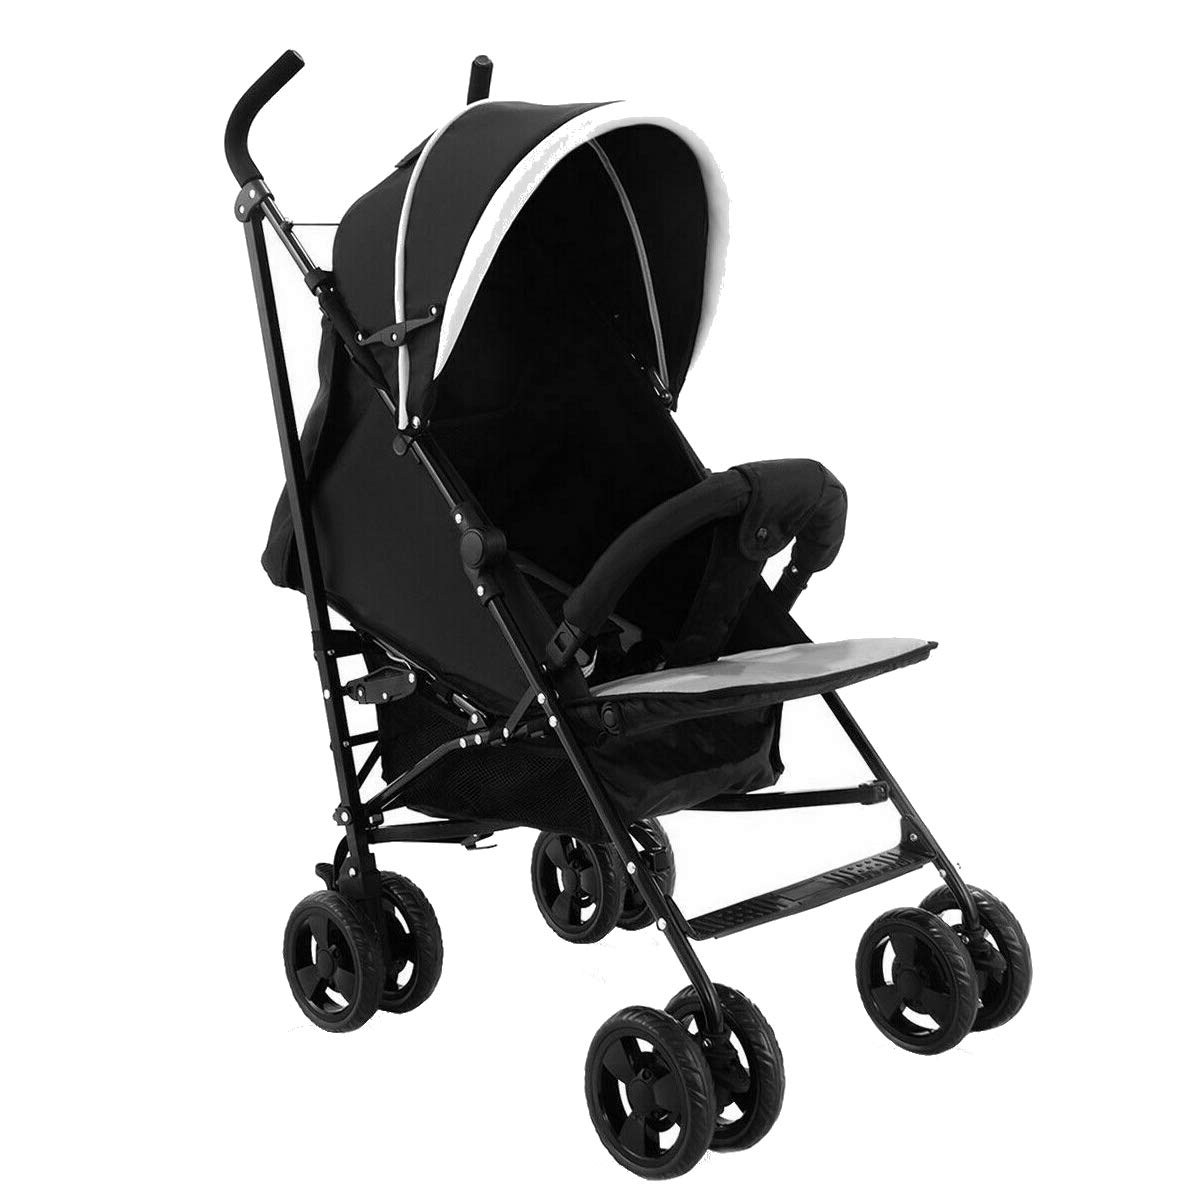 Kids Jogger Foldable Baby Stroller Buggy Travel Infant Pushchair Lightweight Eco-Friendly Material